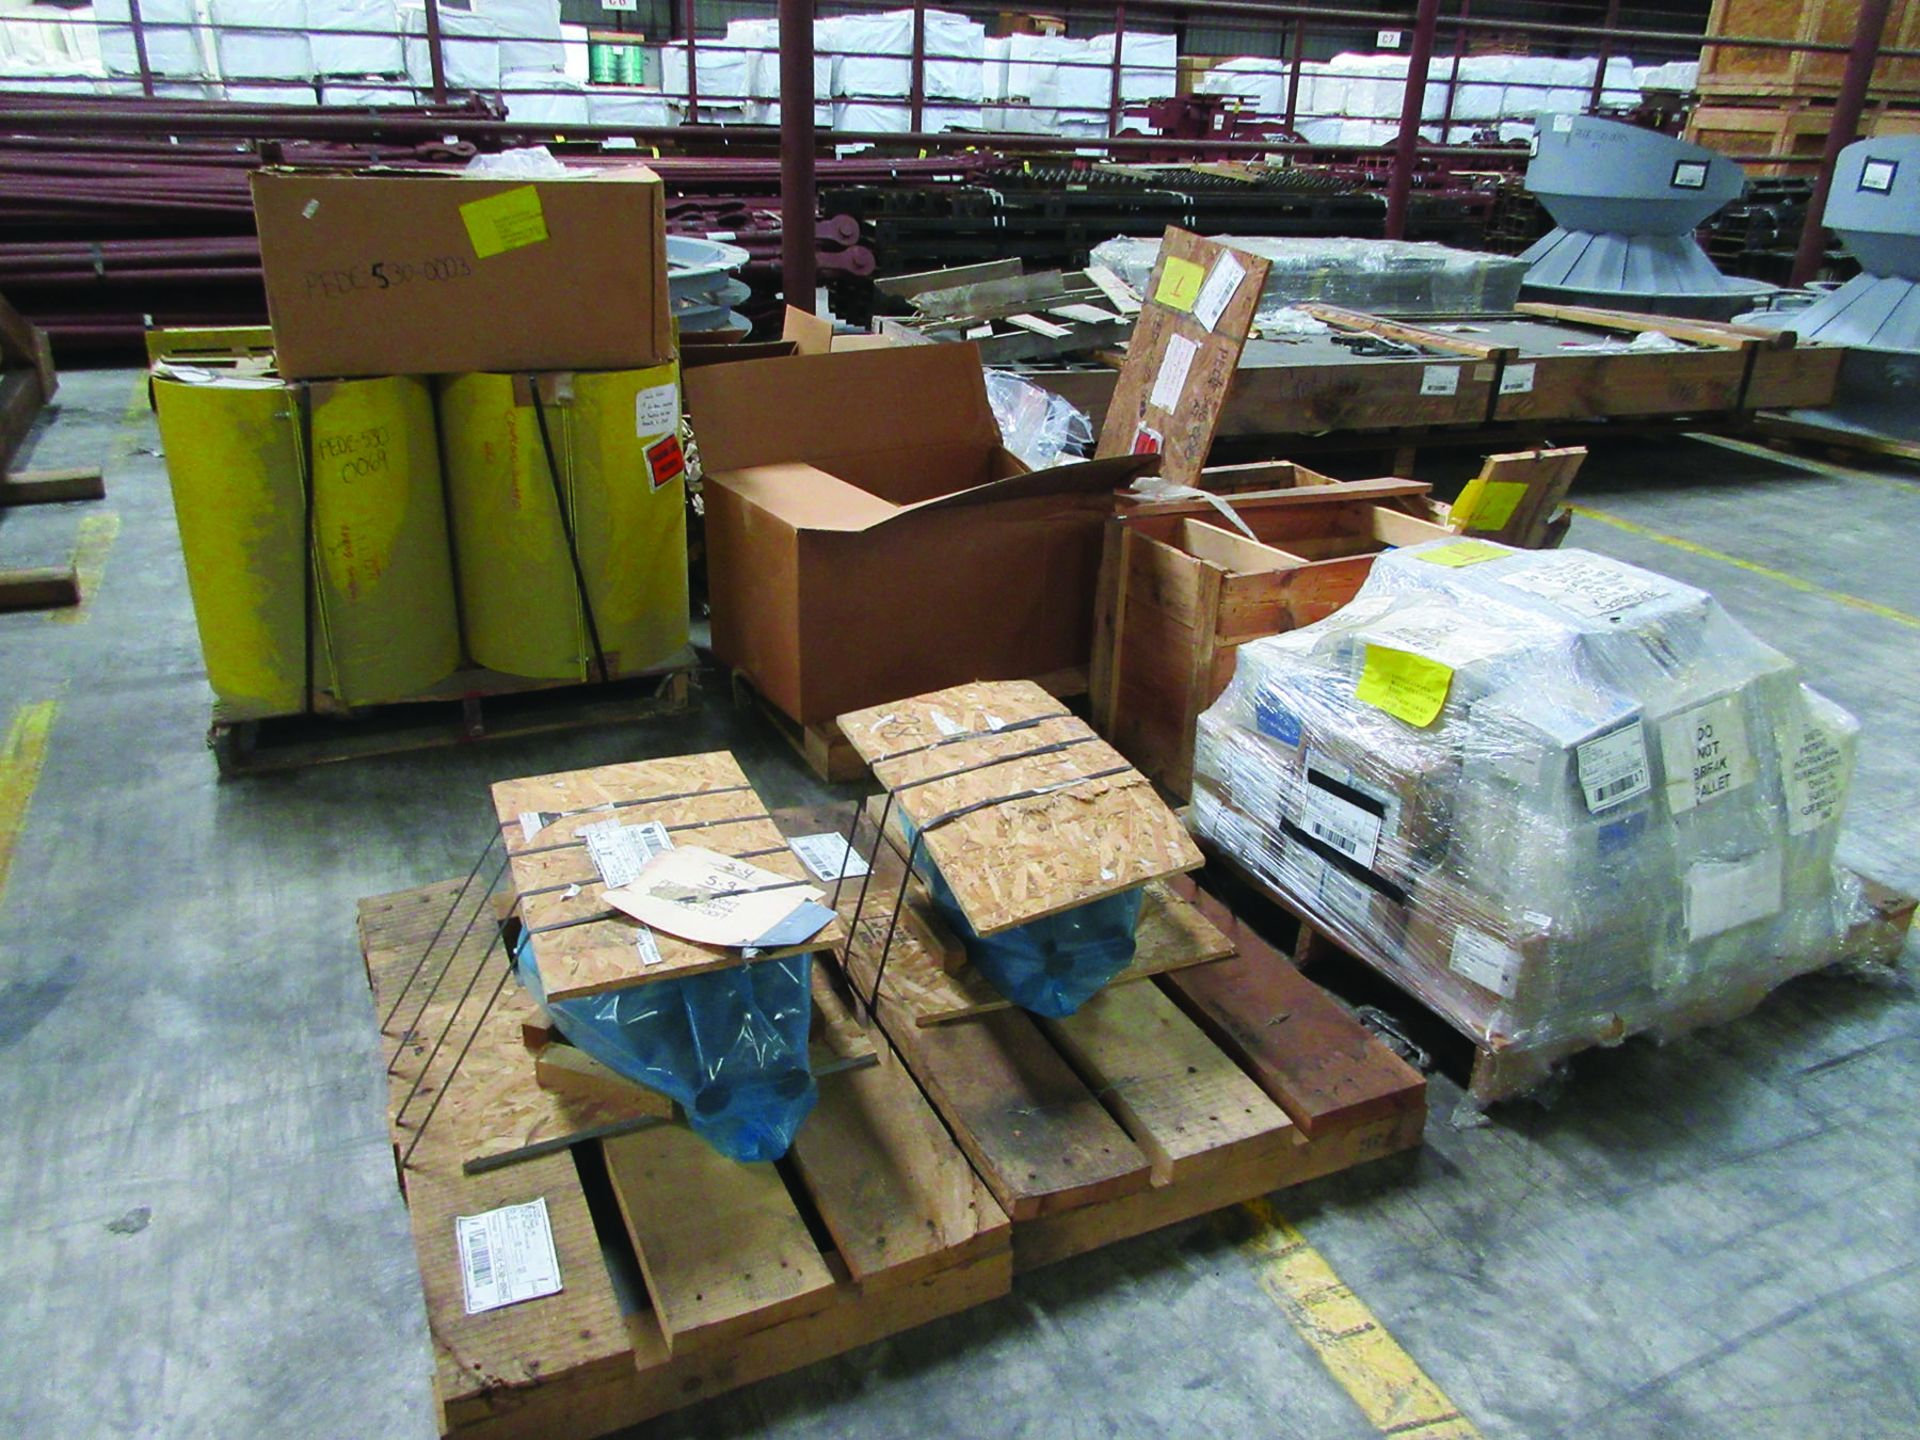 LOT OF ASSORTED PARTS: BARSETS, SHAFT COUPLINGS, COUPLING GUARDS, AND MORE, GRID A7 - Image 2 of 16